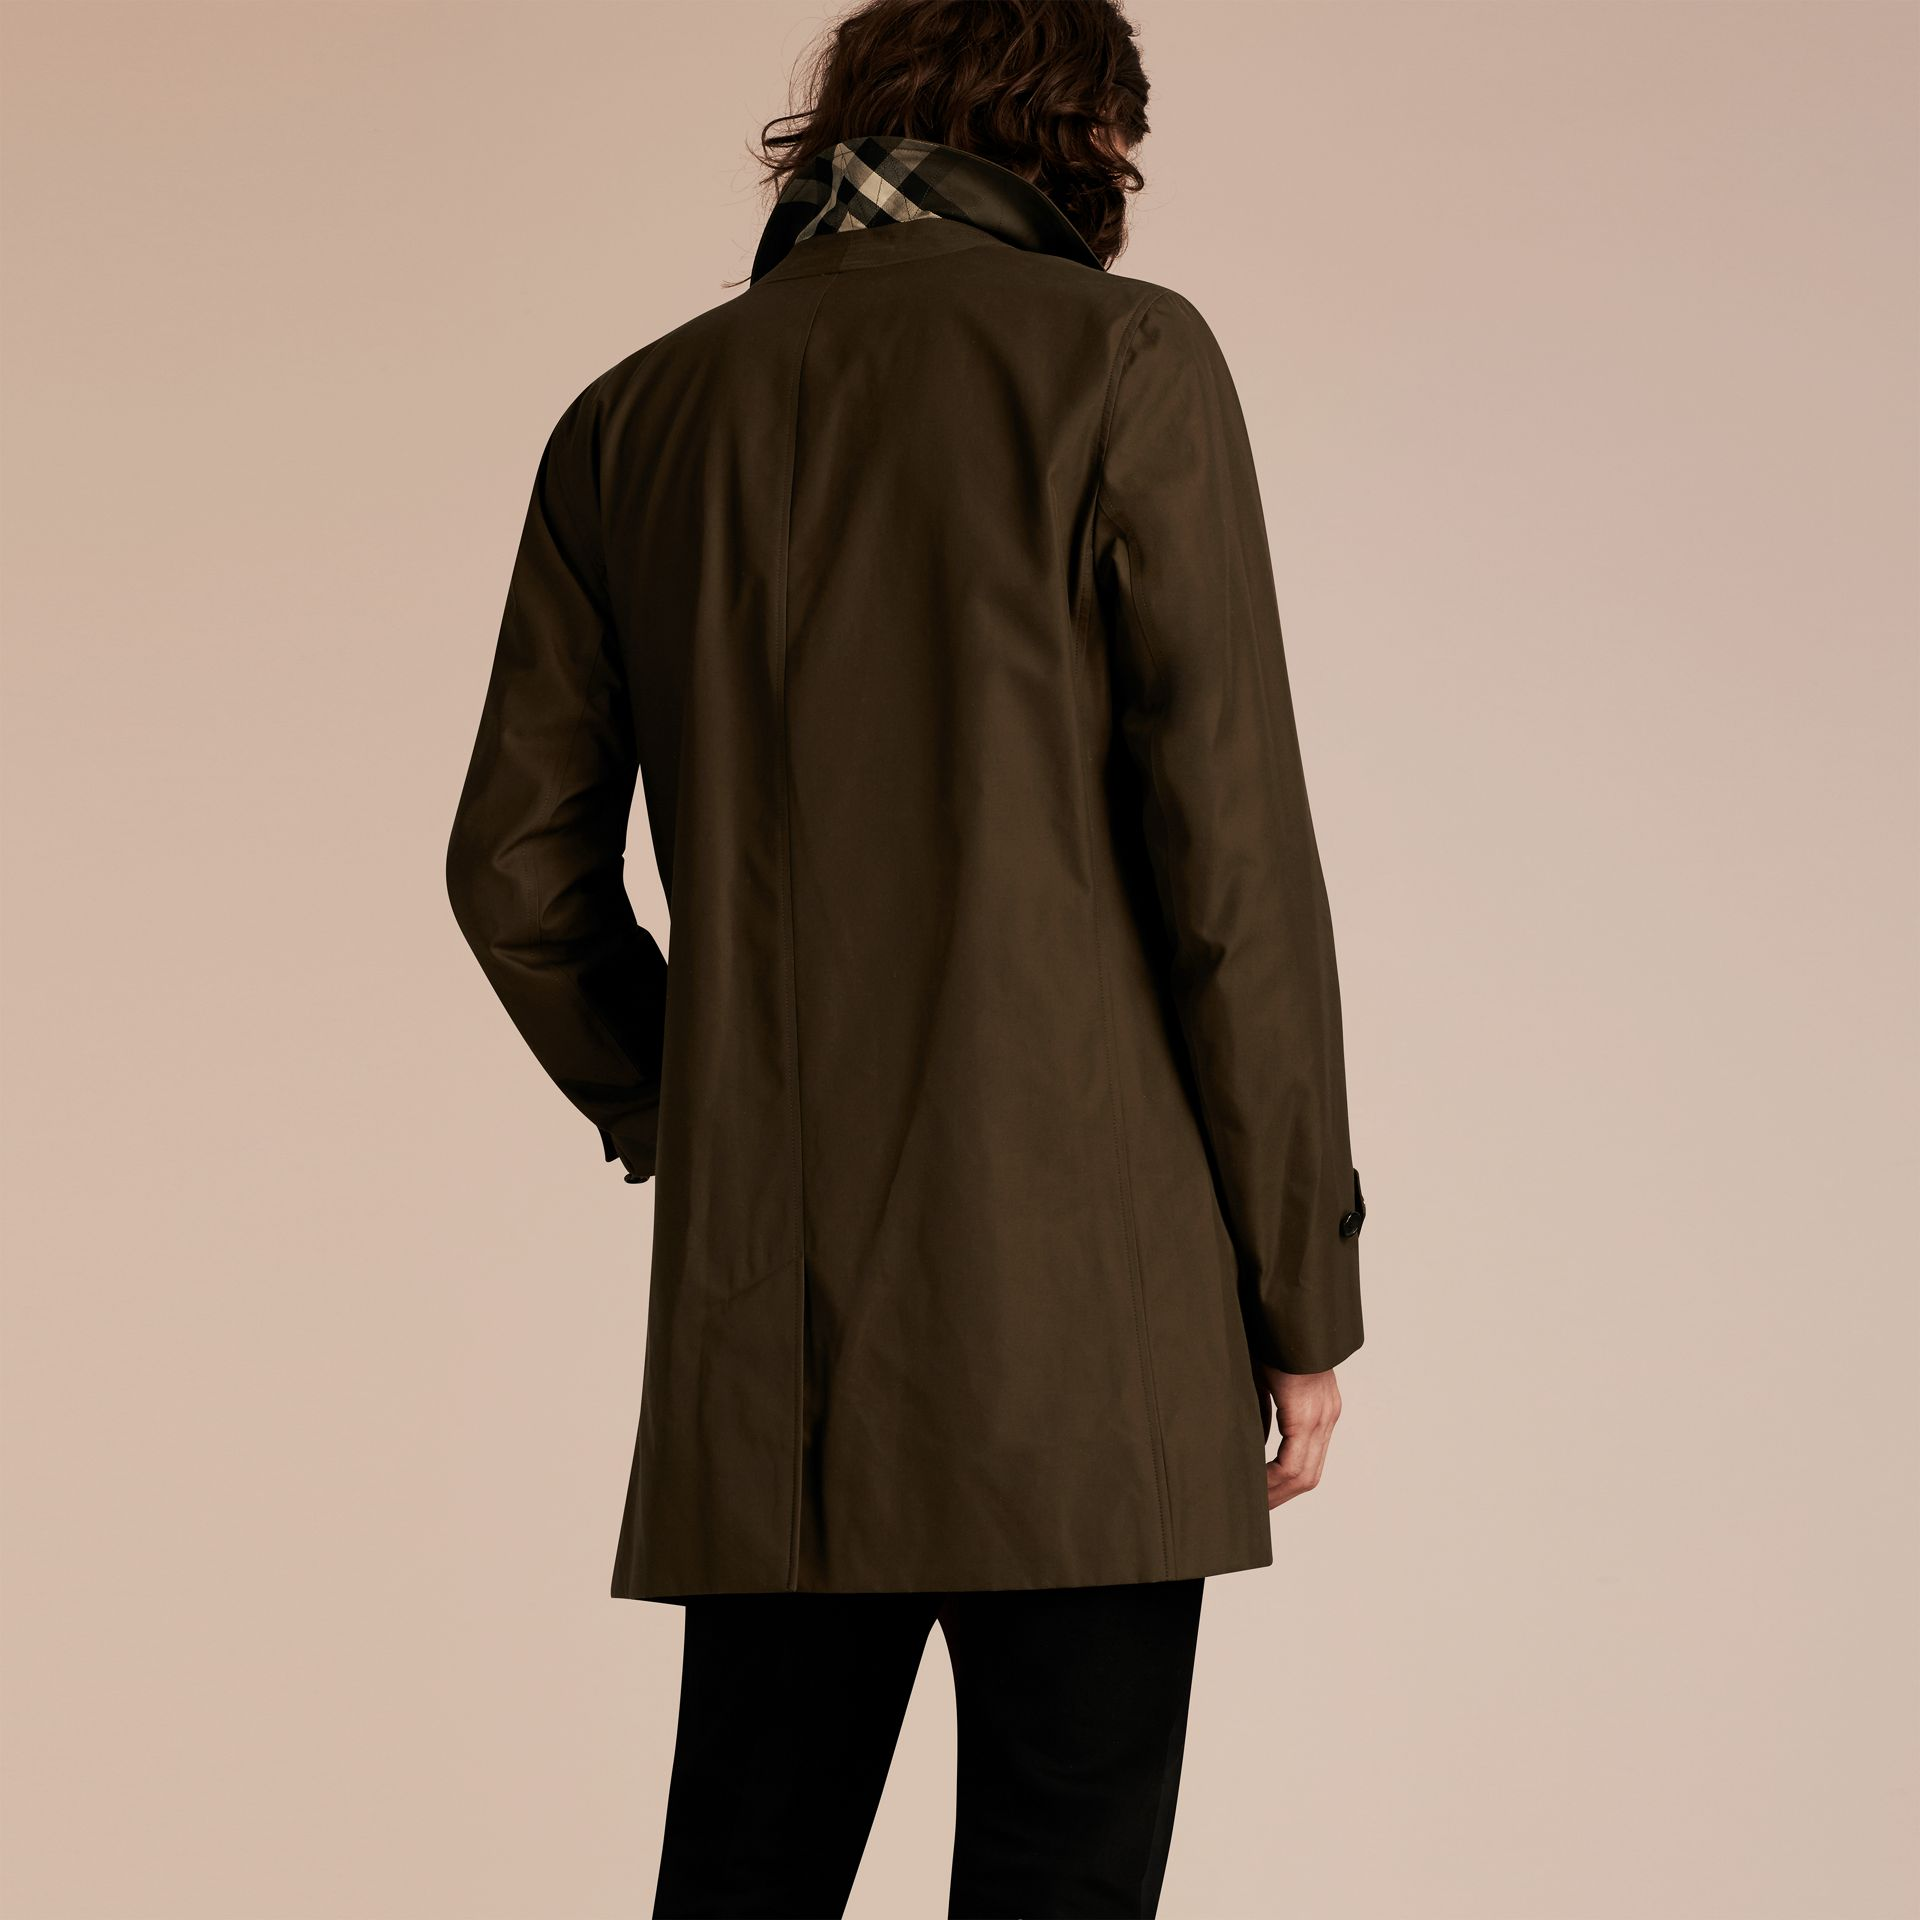 Dark khaki green Cotton Gabardine Car Coat Dark Khaki Green - gallery image 3